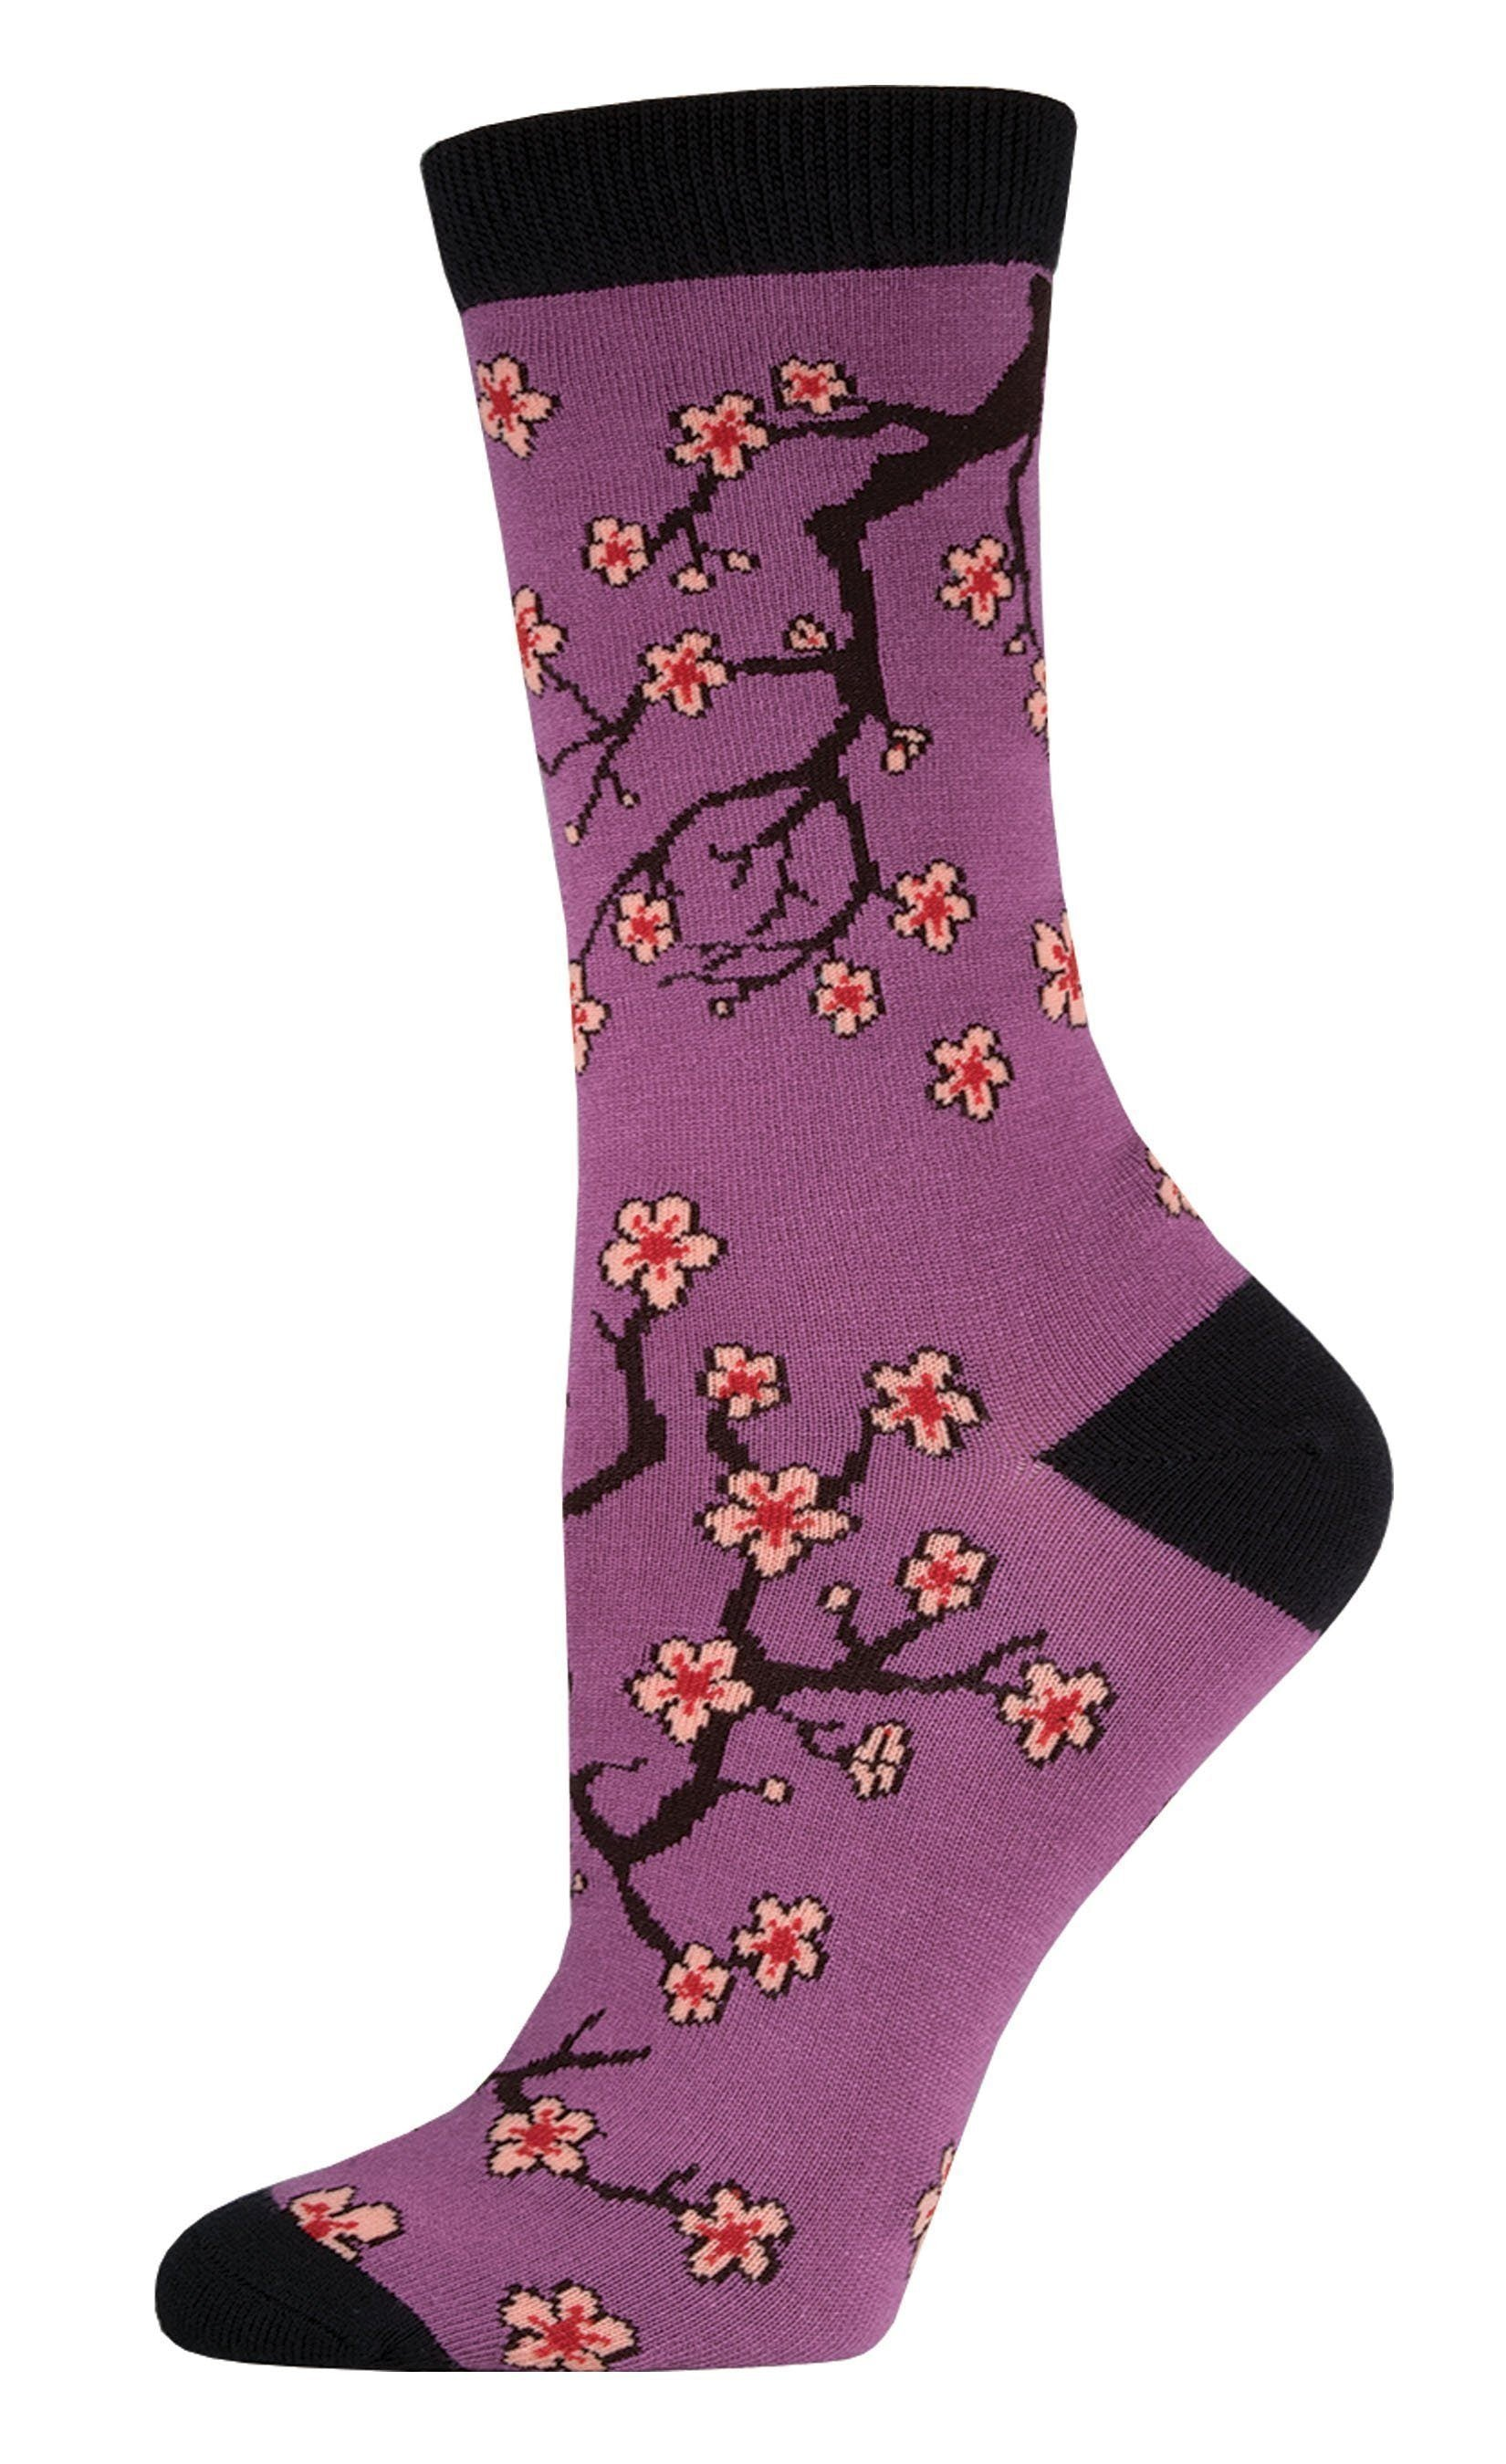 Socksmith - Bamboo Cherry Blossoms Crew Socks | Women's - Knock Your Socks Off